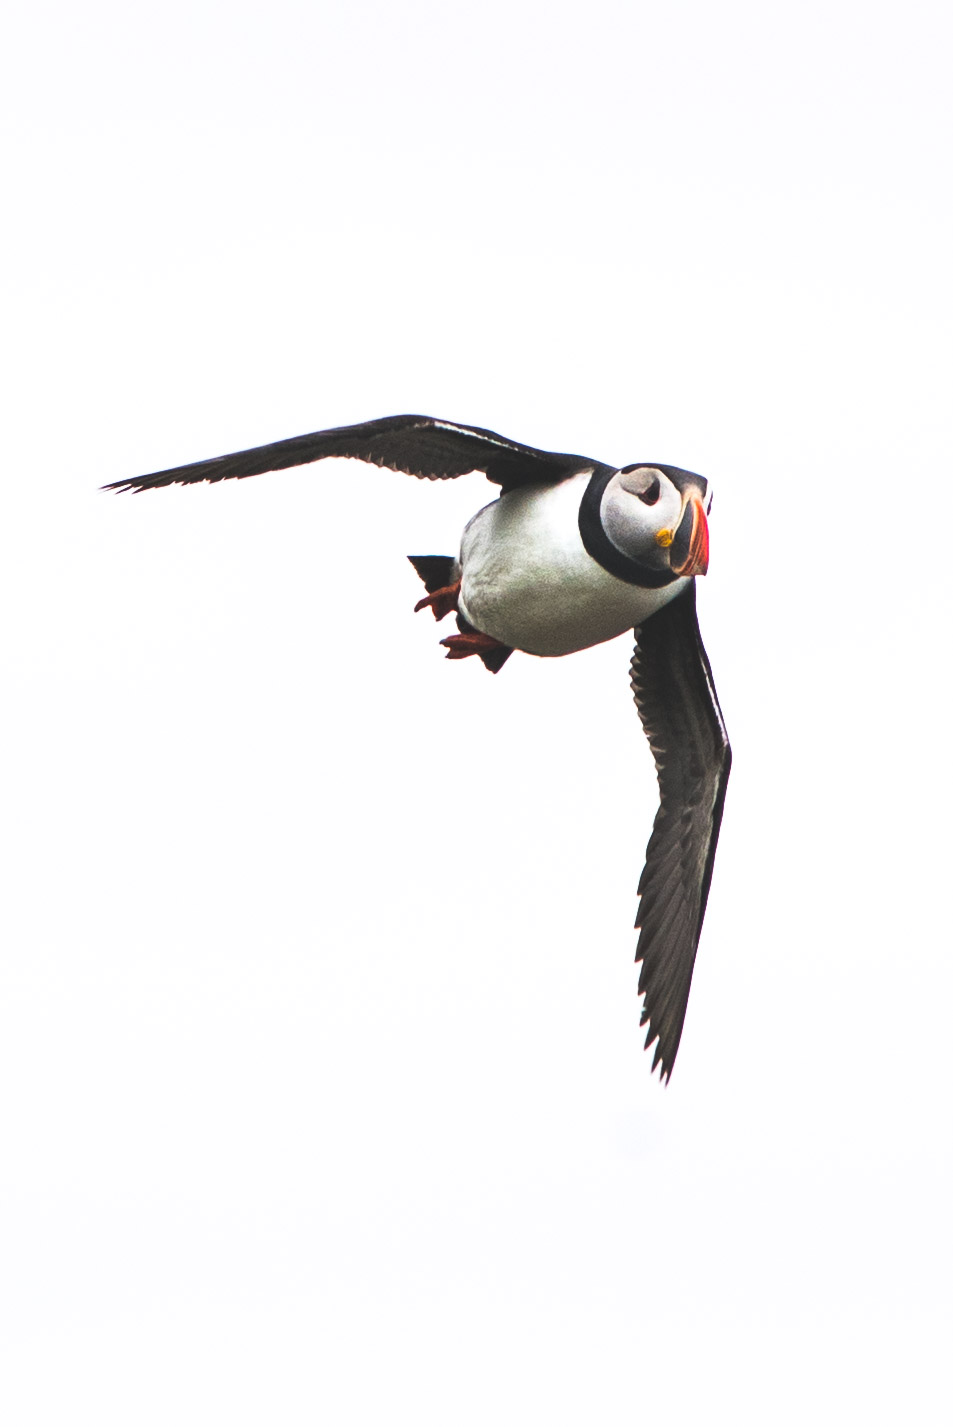 Puffin in mid-flight. Quite a challenge.